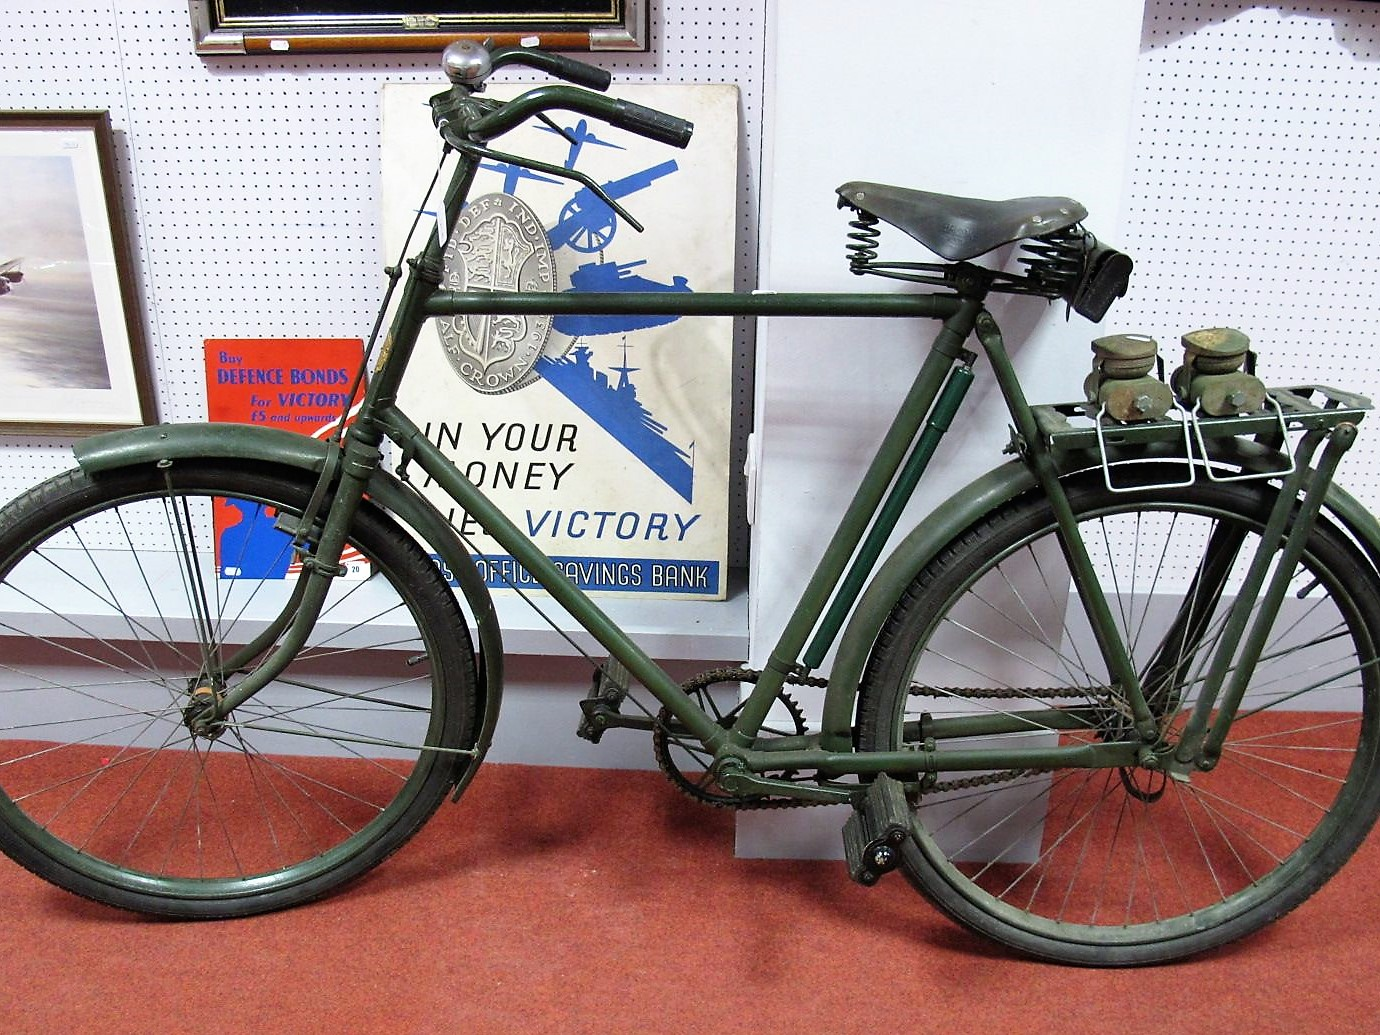 Lot 21 - A WWII Phillips MKV Military Roadster Bicycle, roller lever brakes front and rear, parcel rack,